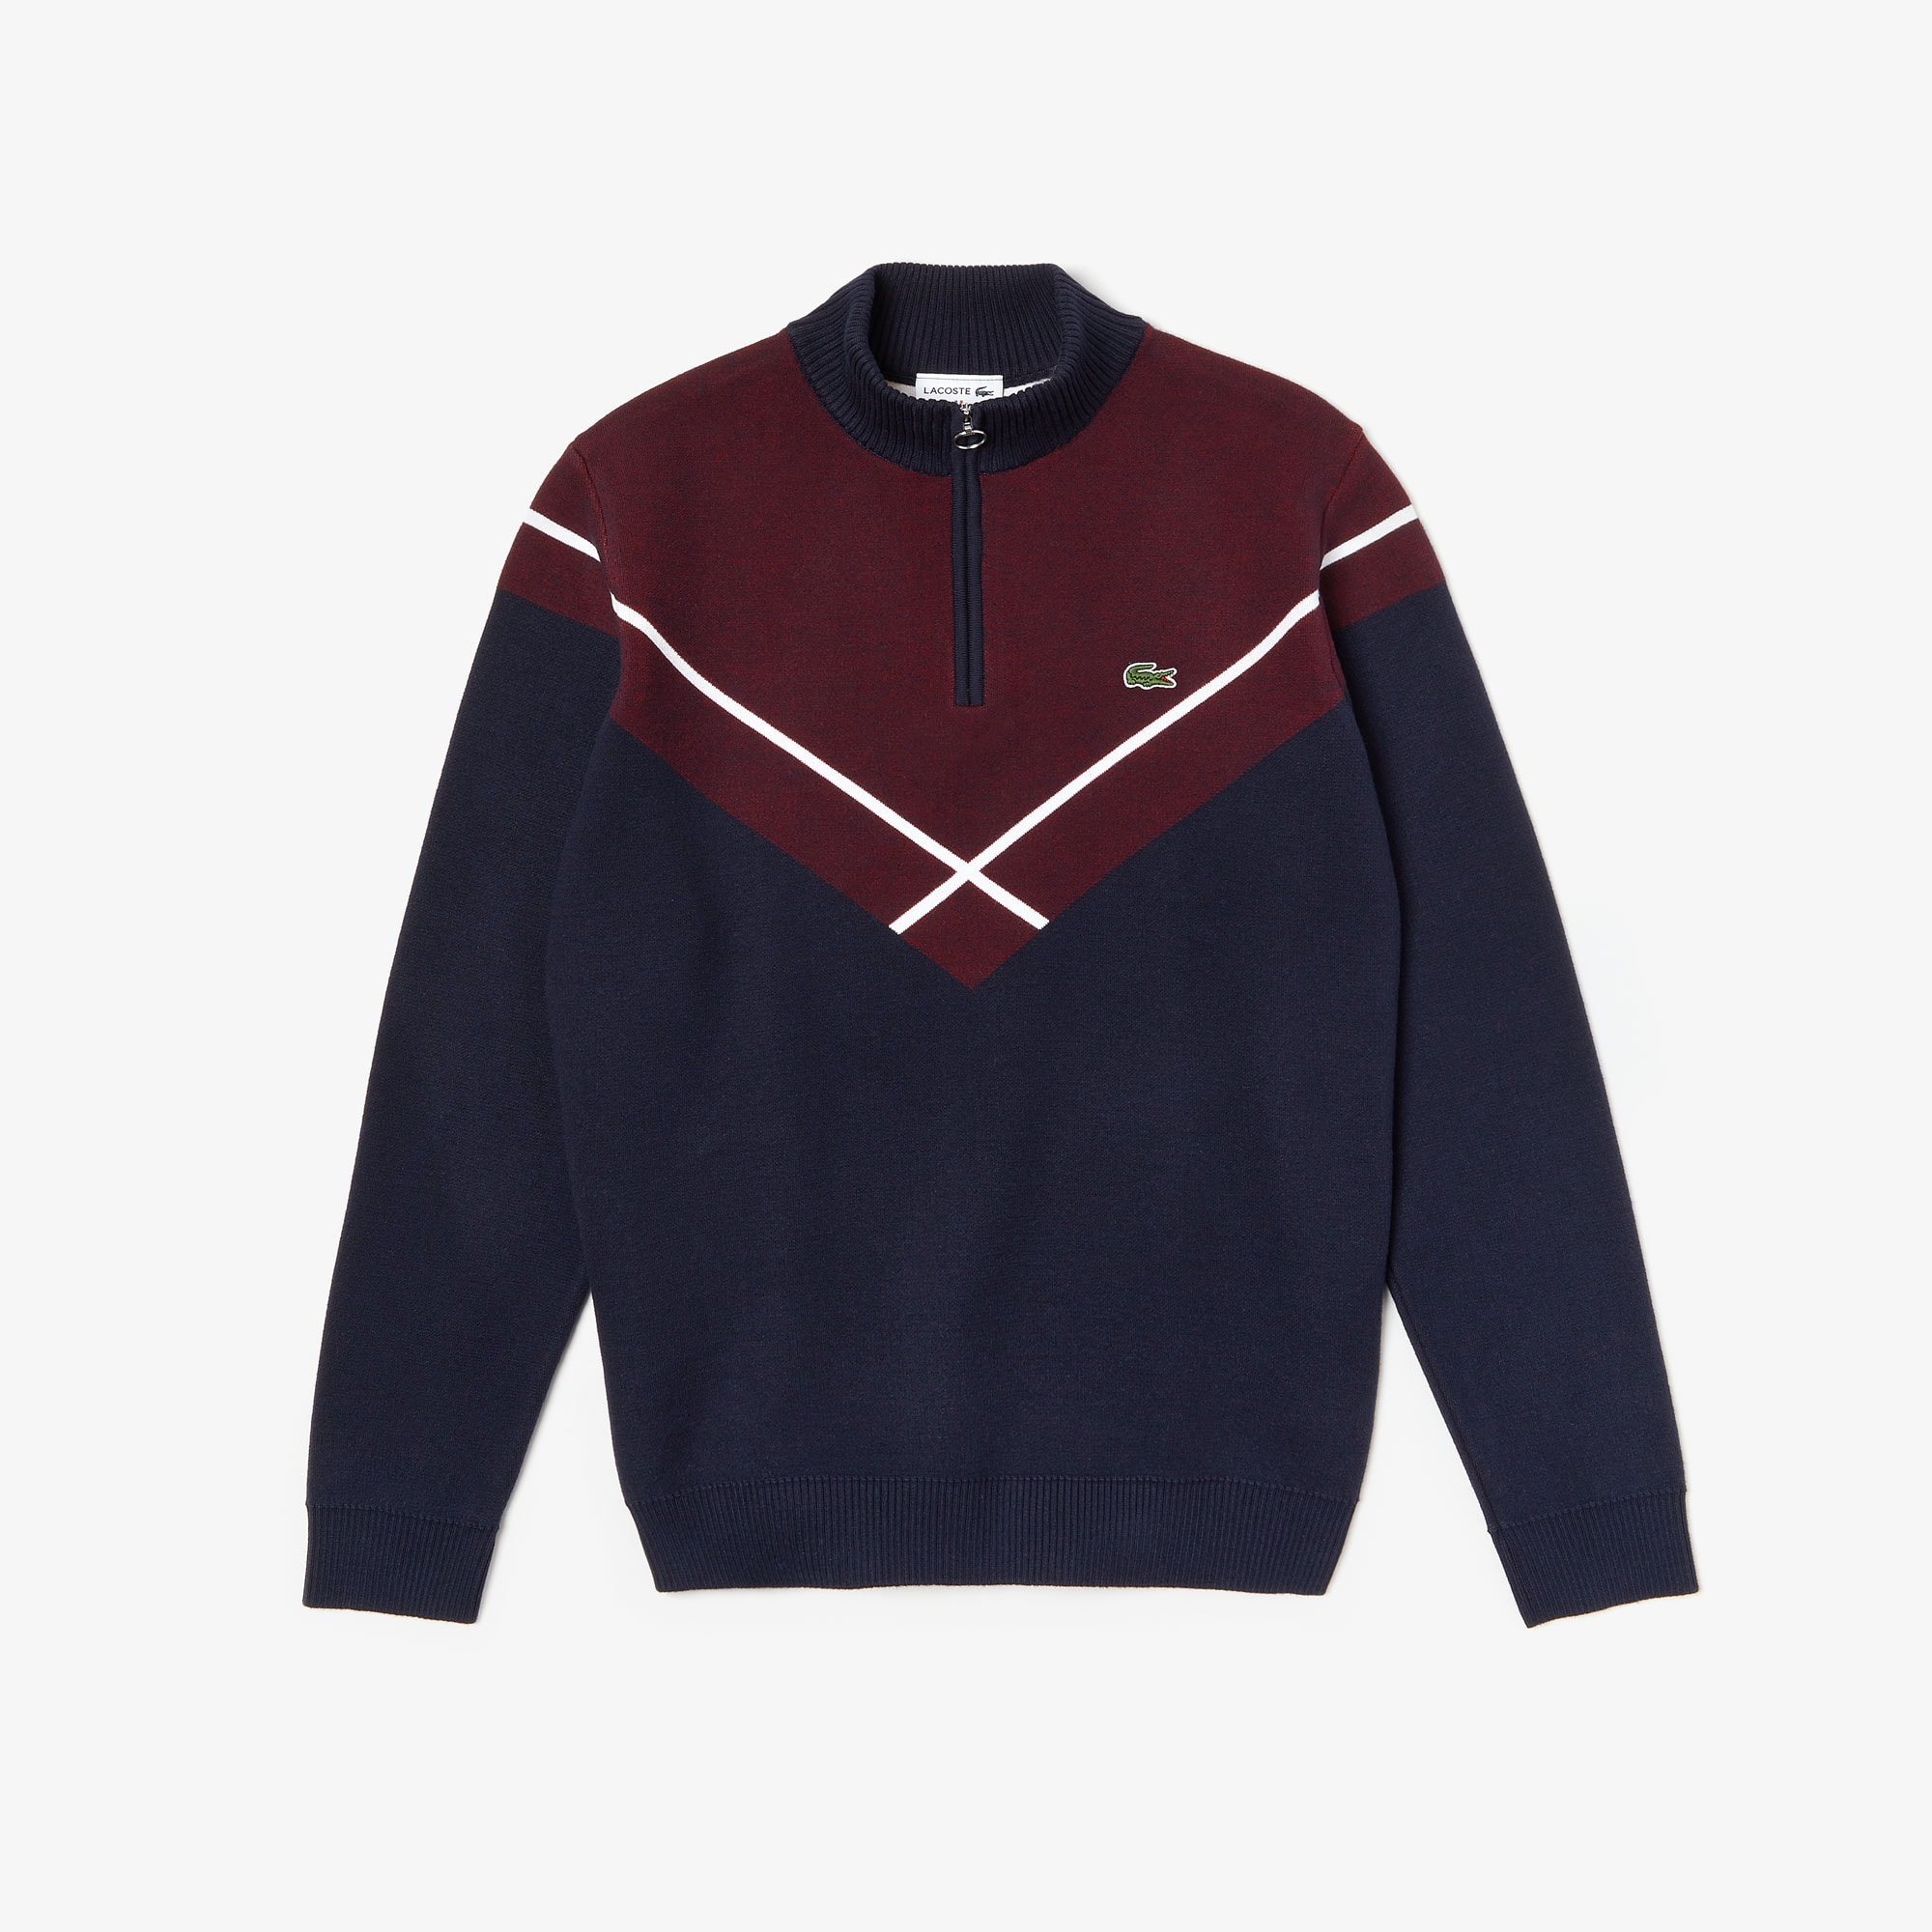 Men's Made In France Zip-Collar Jacquard Sweater